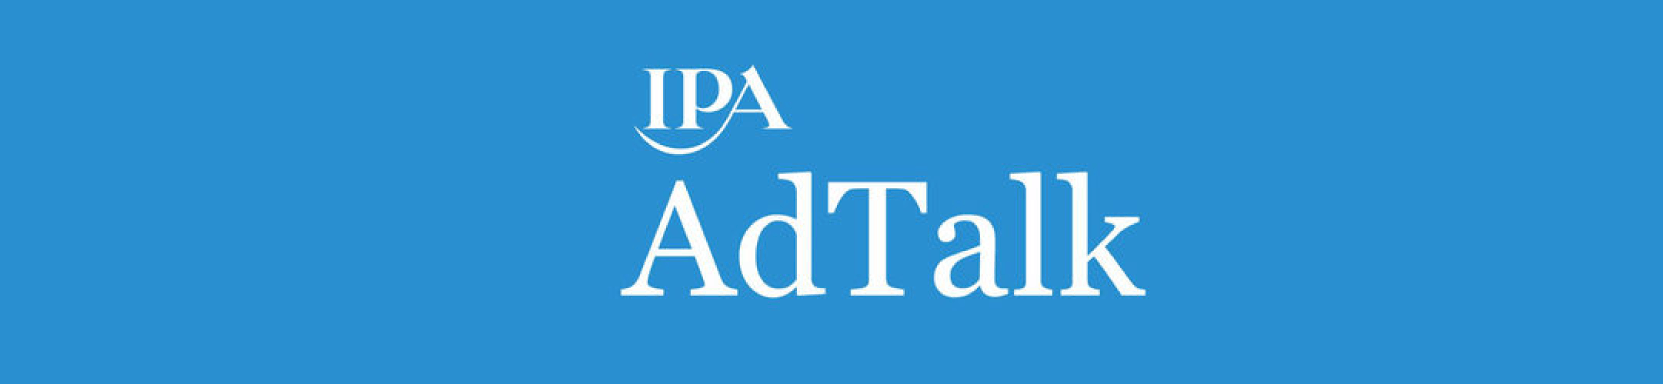 IPA AdTalk Podcast